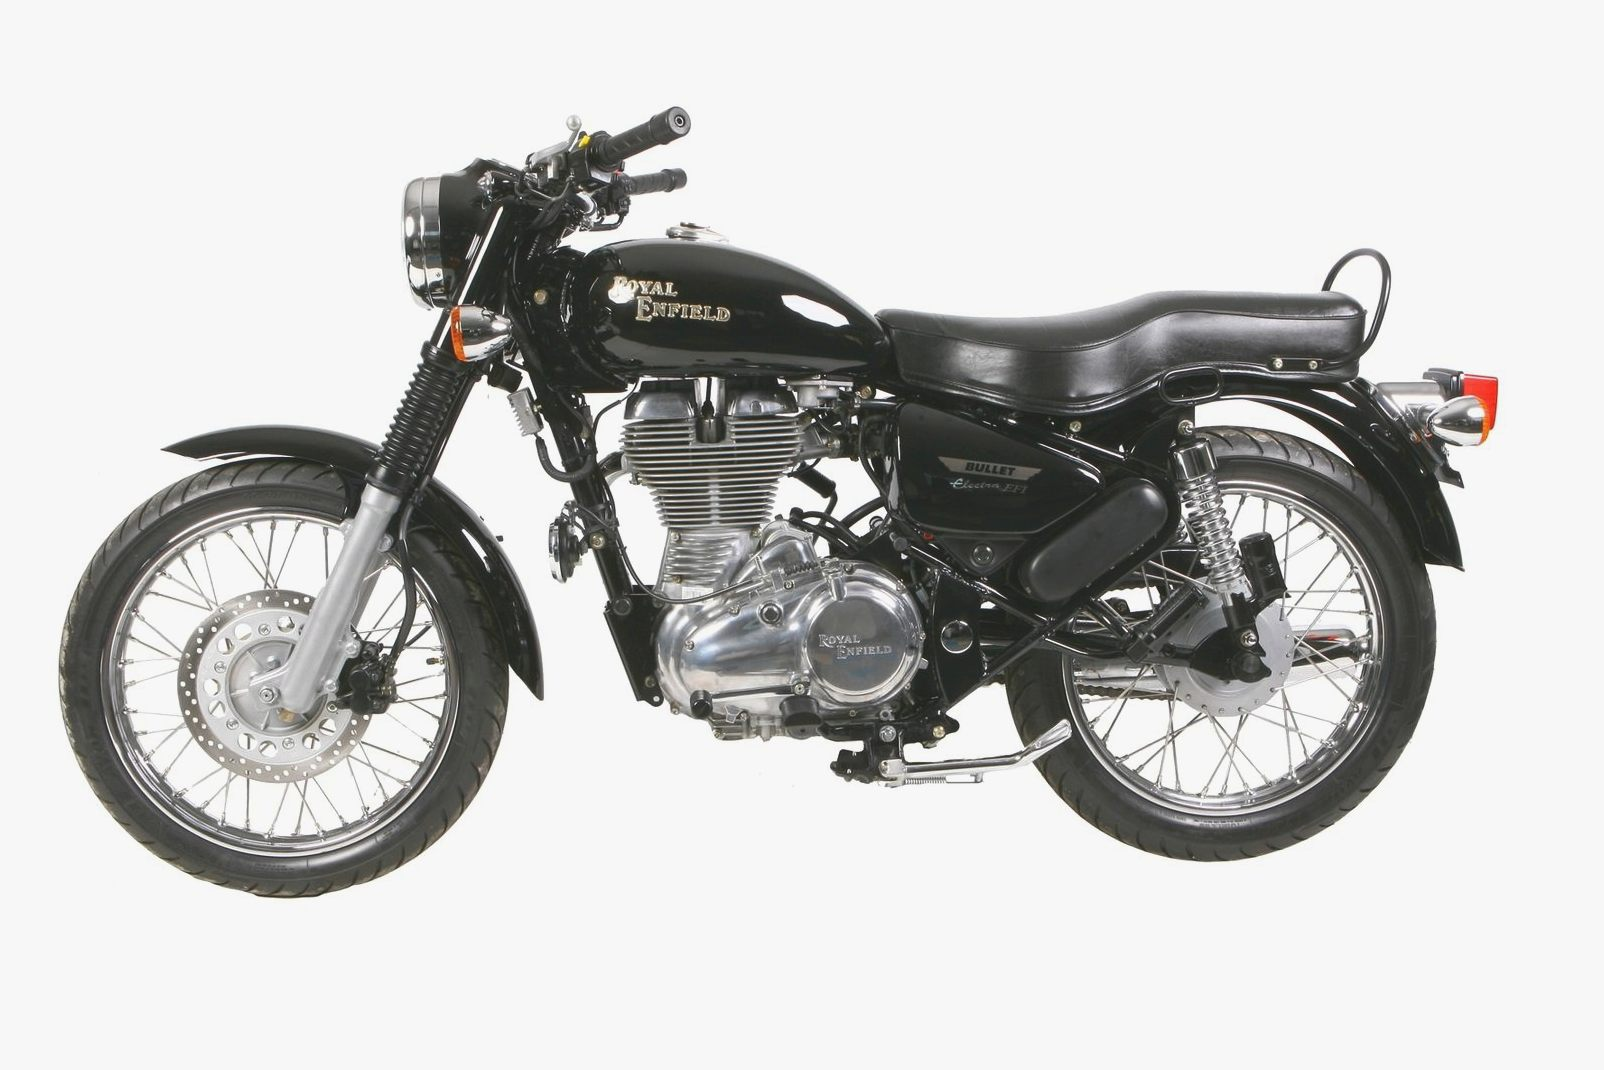 2008 royal enfield bullet 500 electra pics specs and information. Black Bedroom Furniture Sets. Home Design Ideas